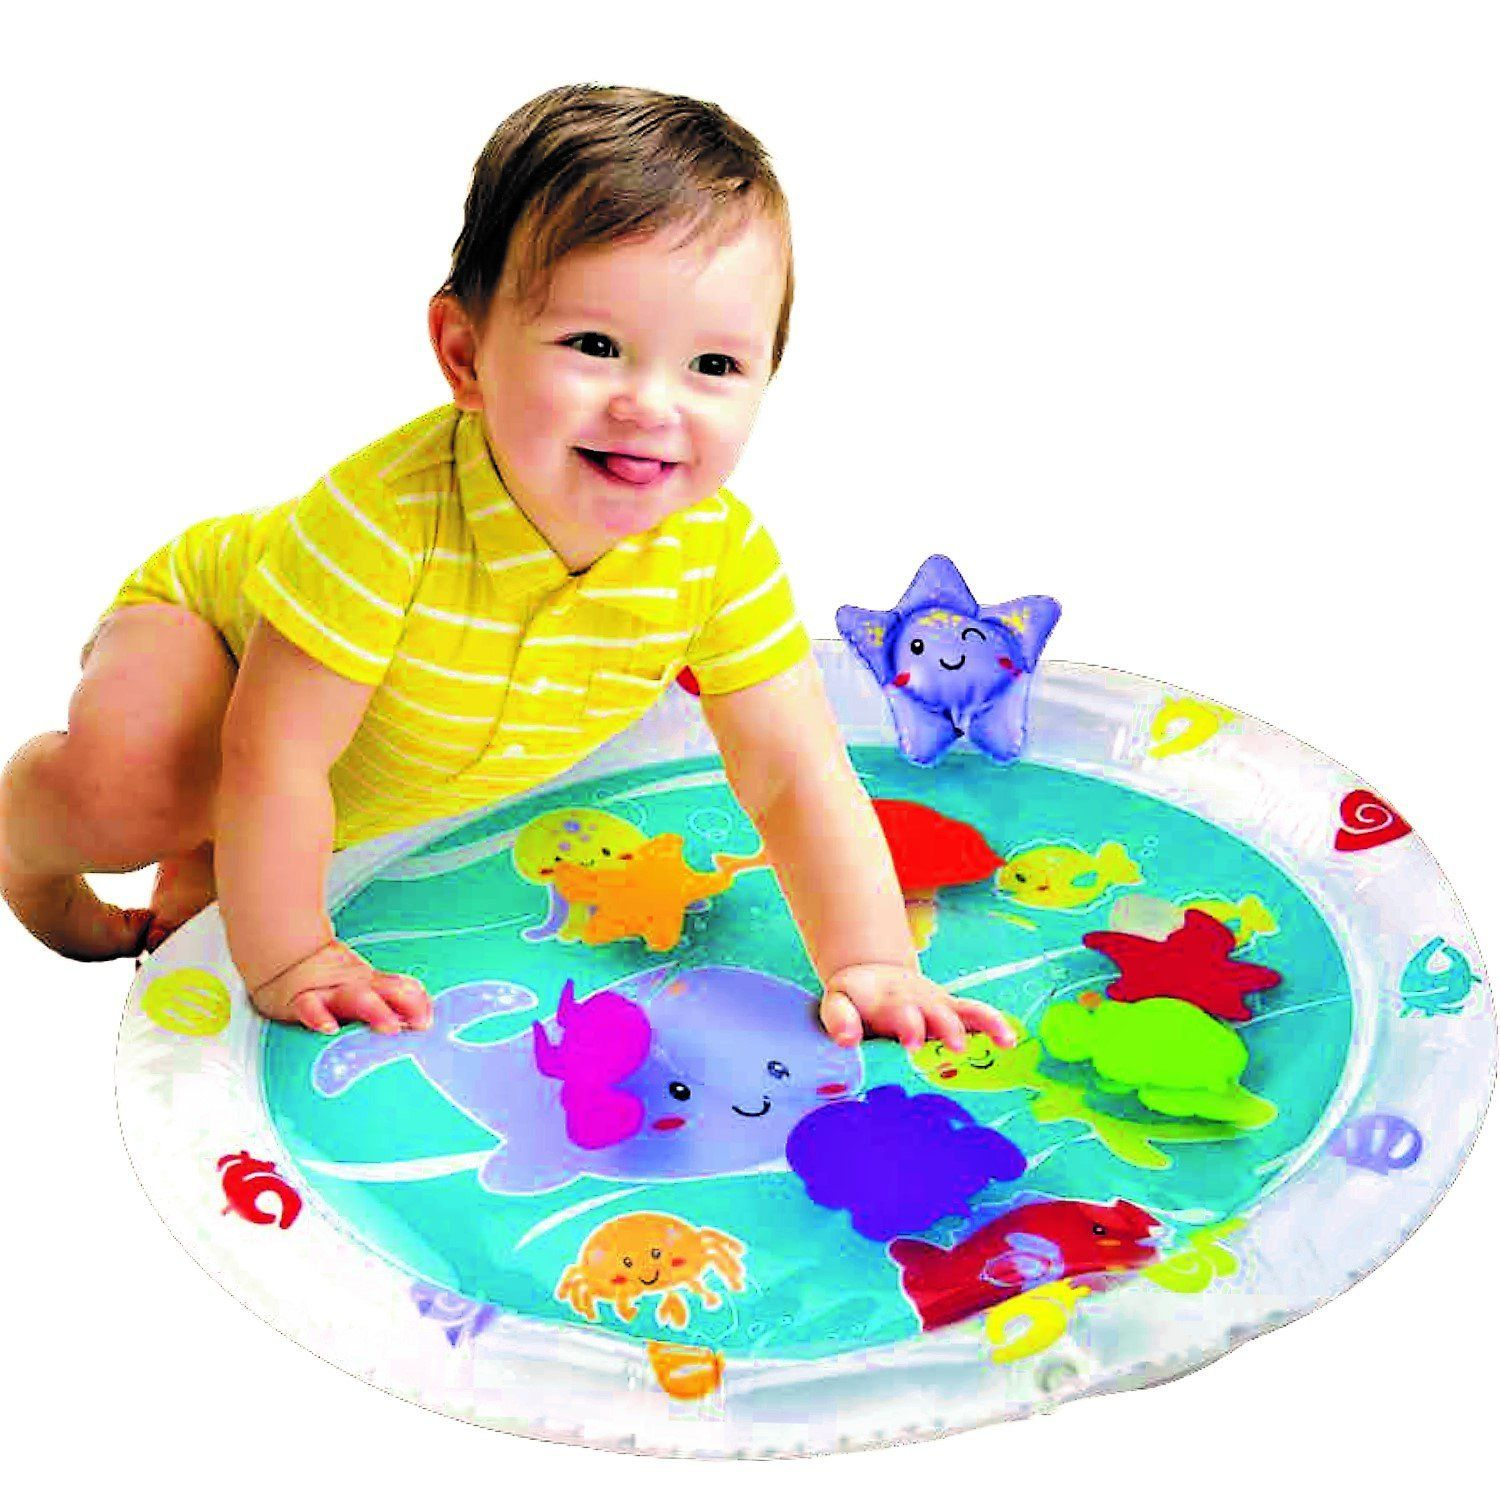 Amazon Com Playkidz Super Durable Inflatable Earlyears Baby Water Play Mat Fill N Fun Play Water Mat Toys Games Water Play Mat Play Mat Water Mat